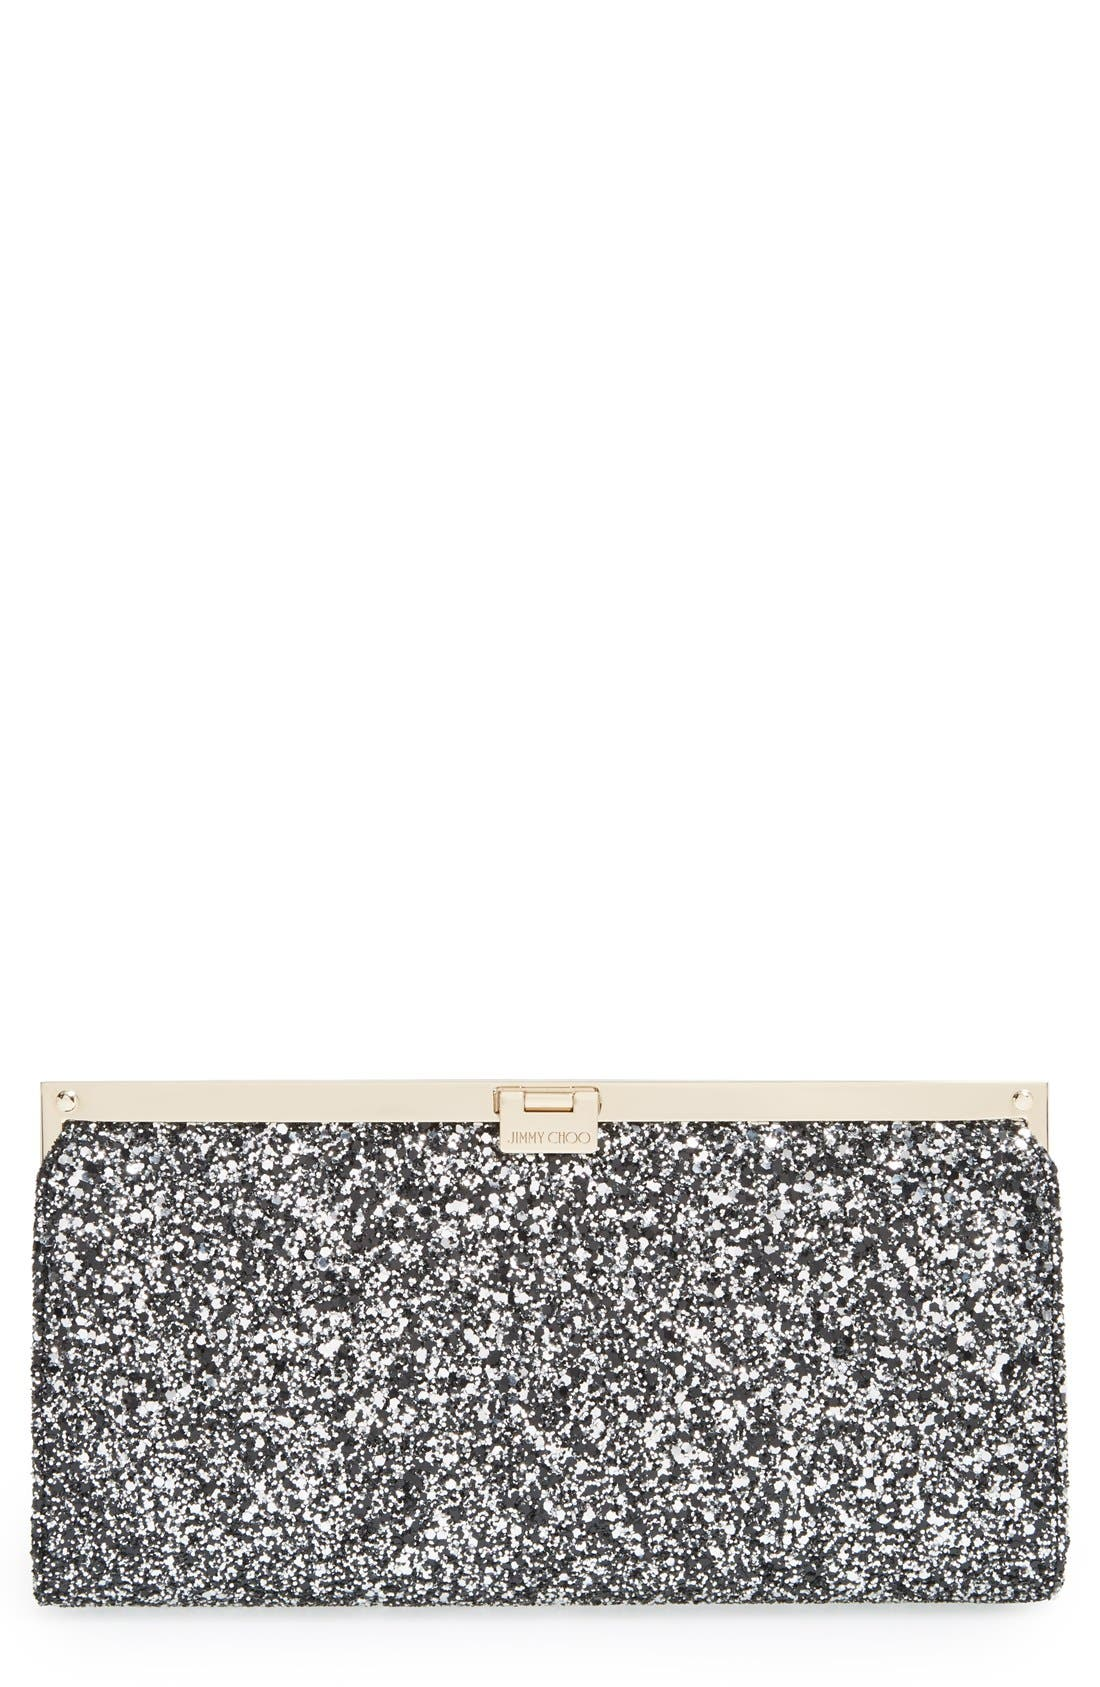 Alternate Image 1 Selected - Jimmy Choo 'Camille' Glitter Clutch